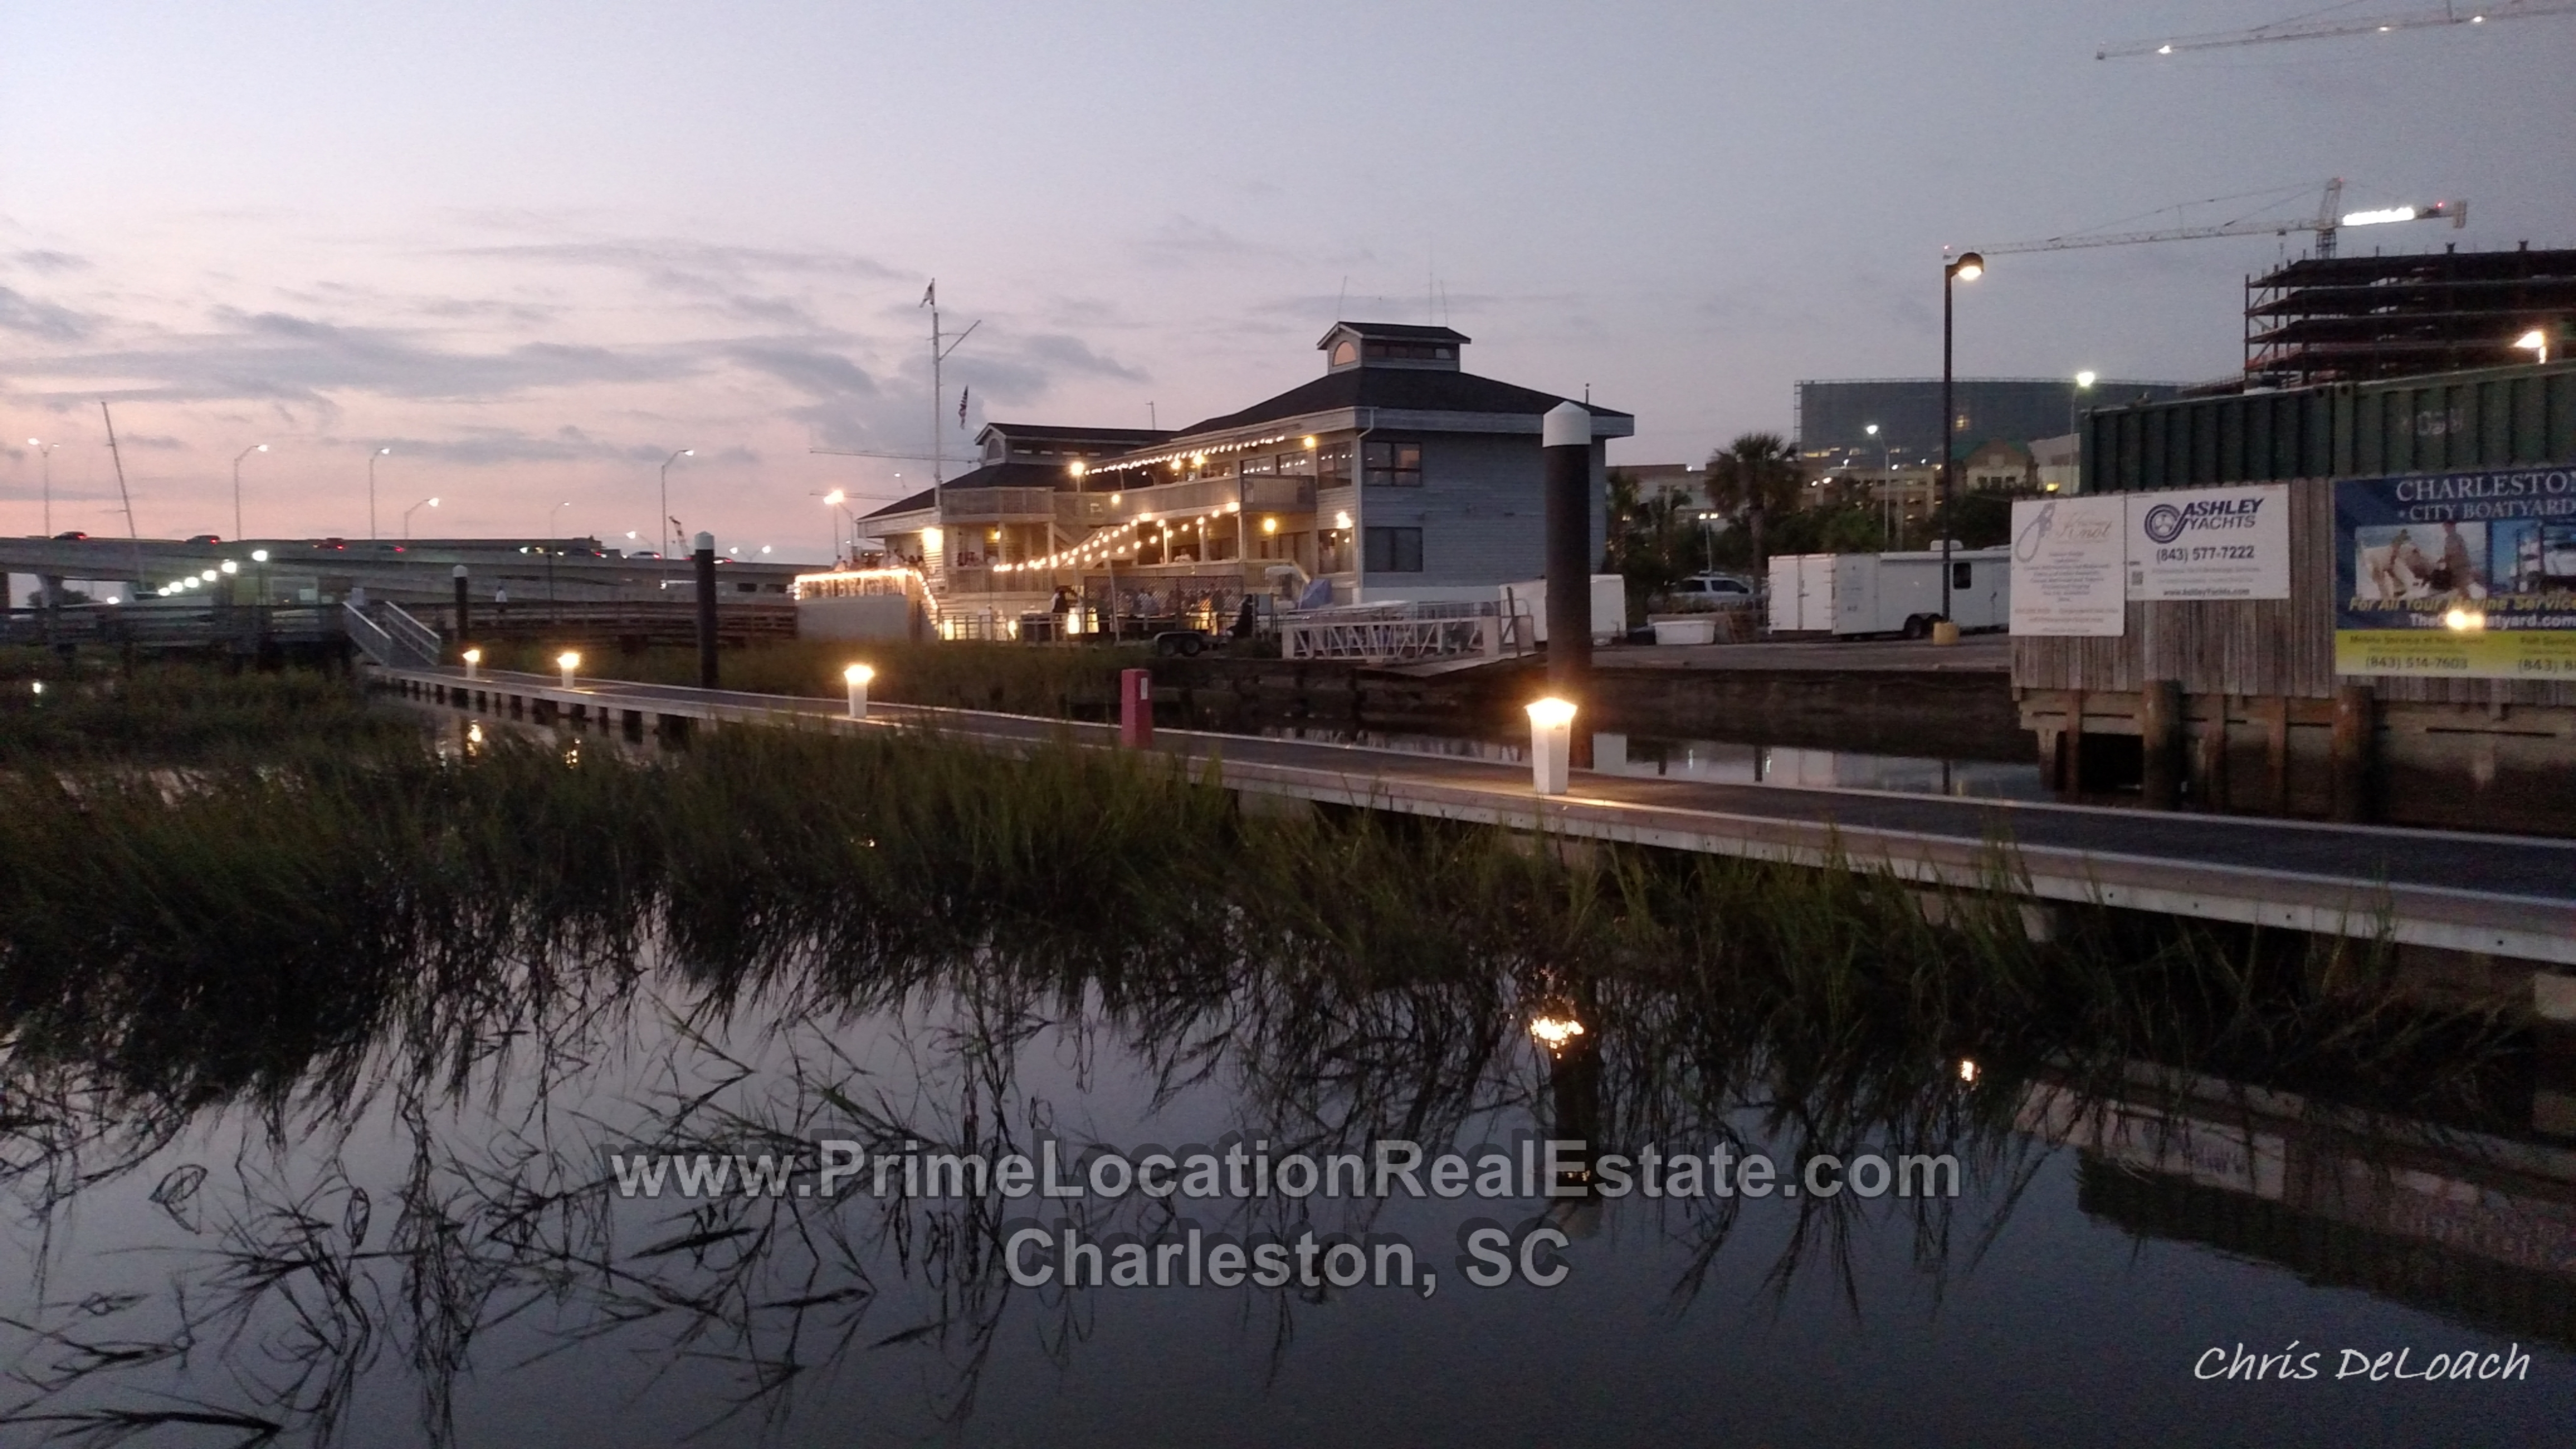 charleston city marina view of Charleston Yacht Clup